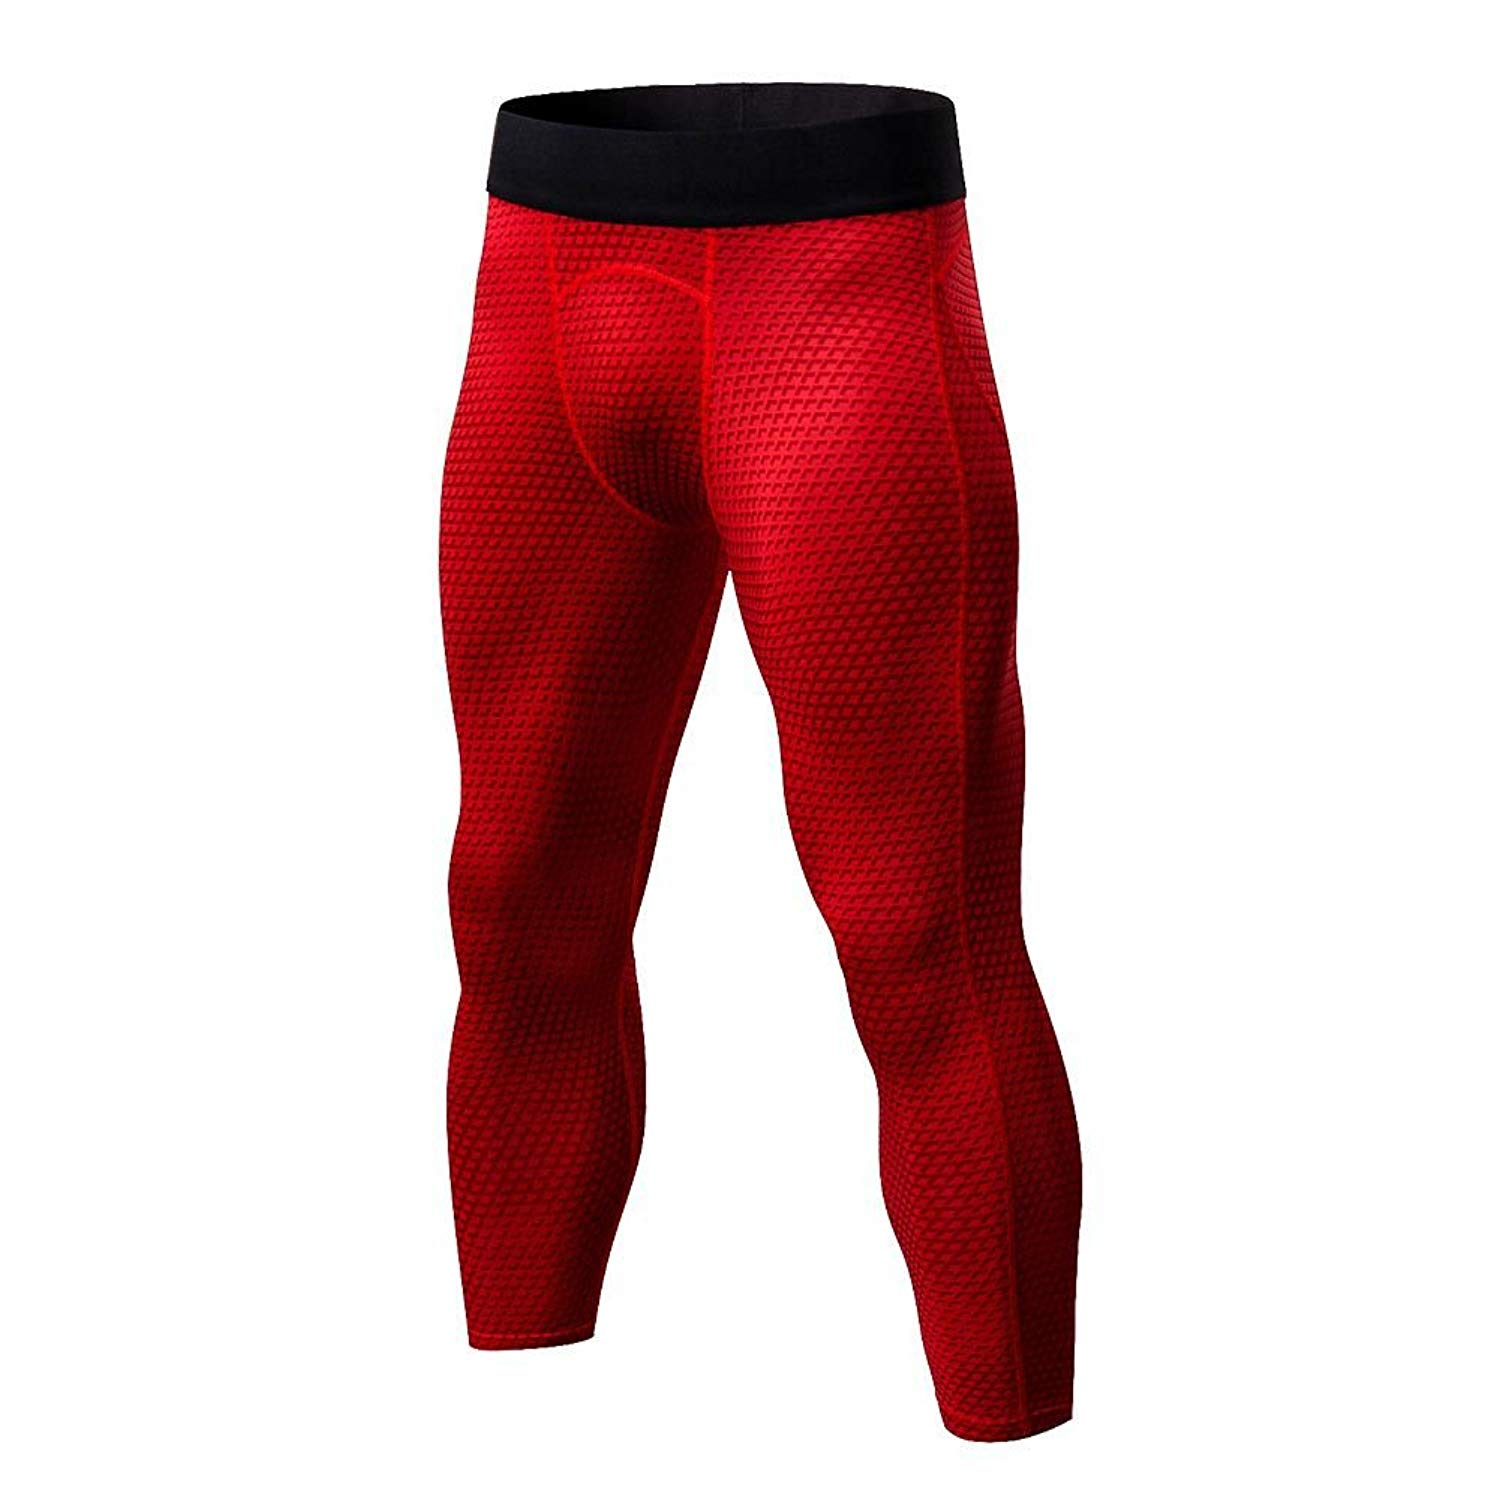 233f20b0fa85a ESHOO Compression Pants 3/4 Tights Capri Pants Running Leggings for Men